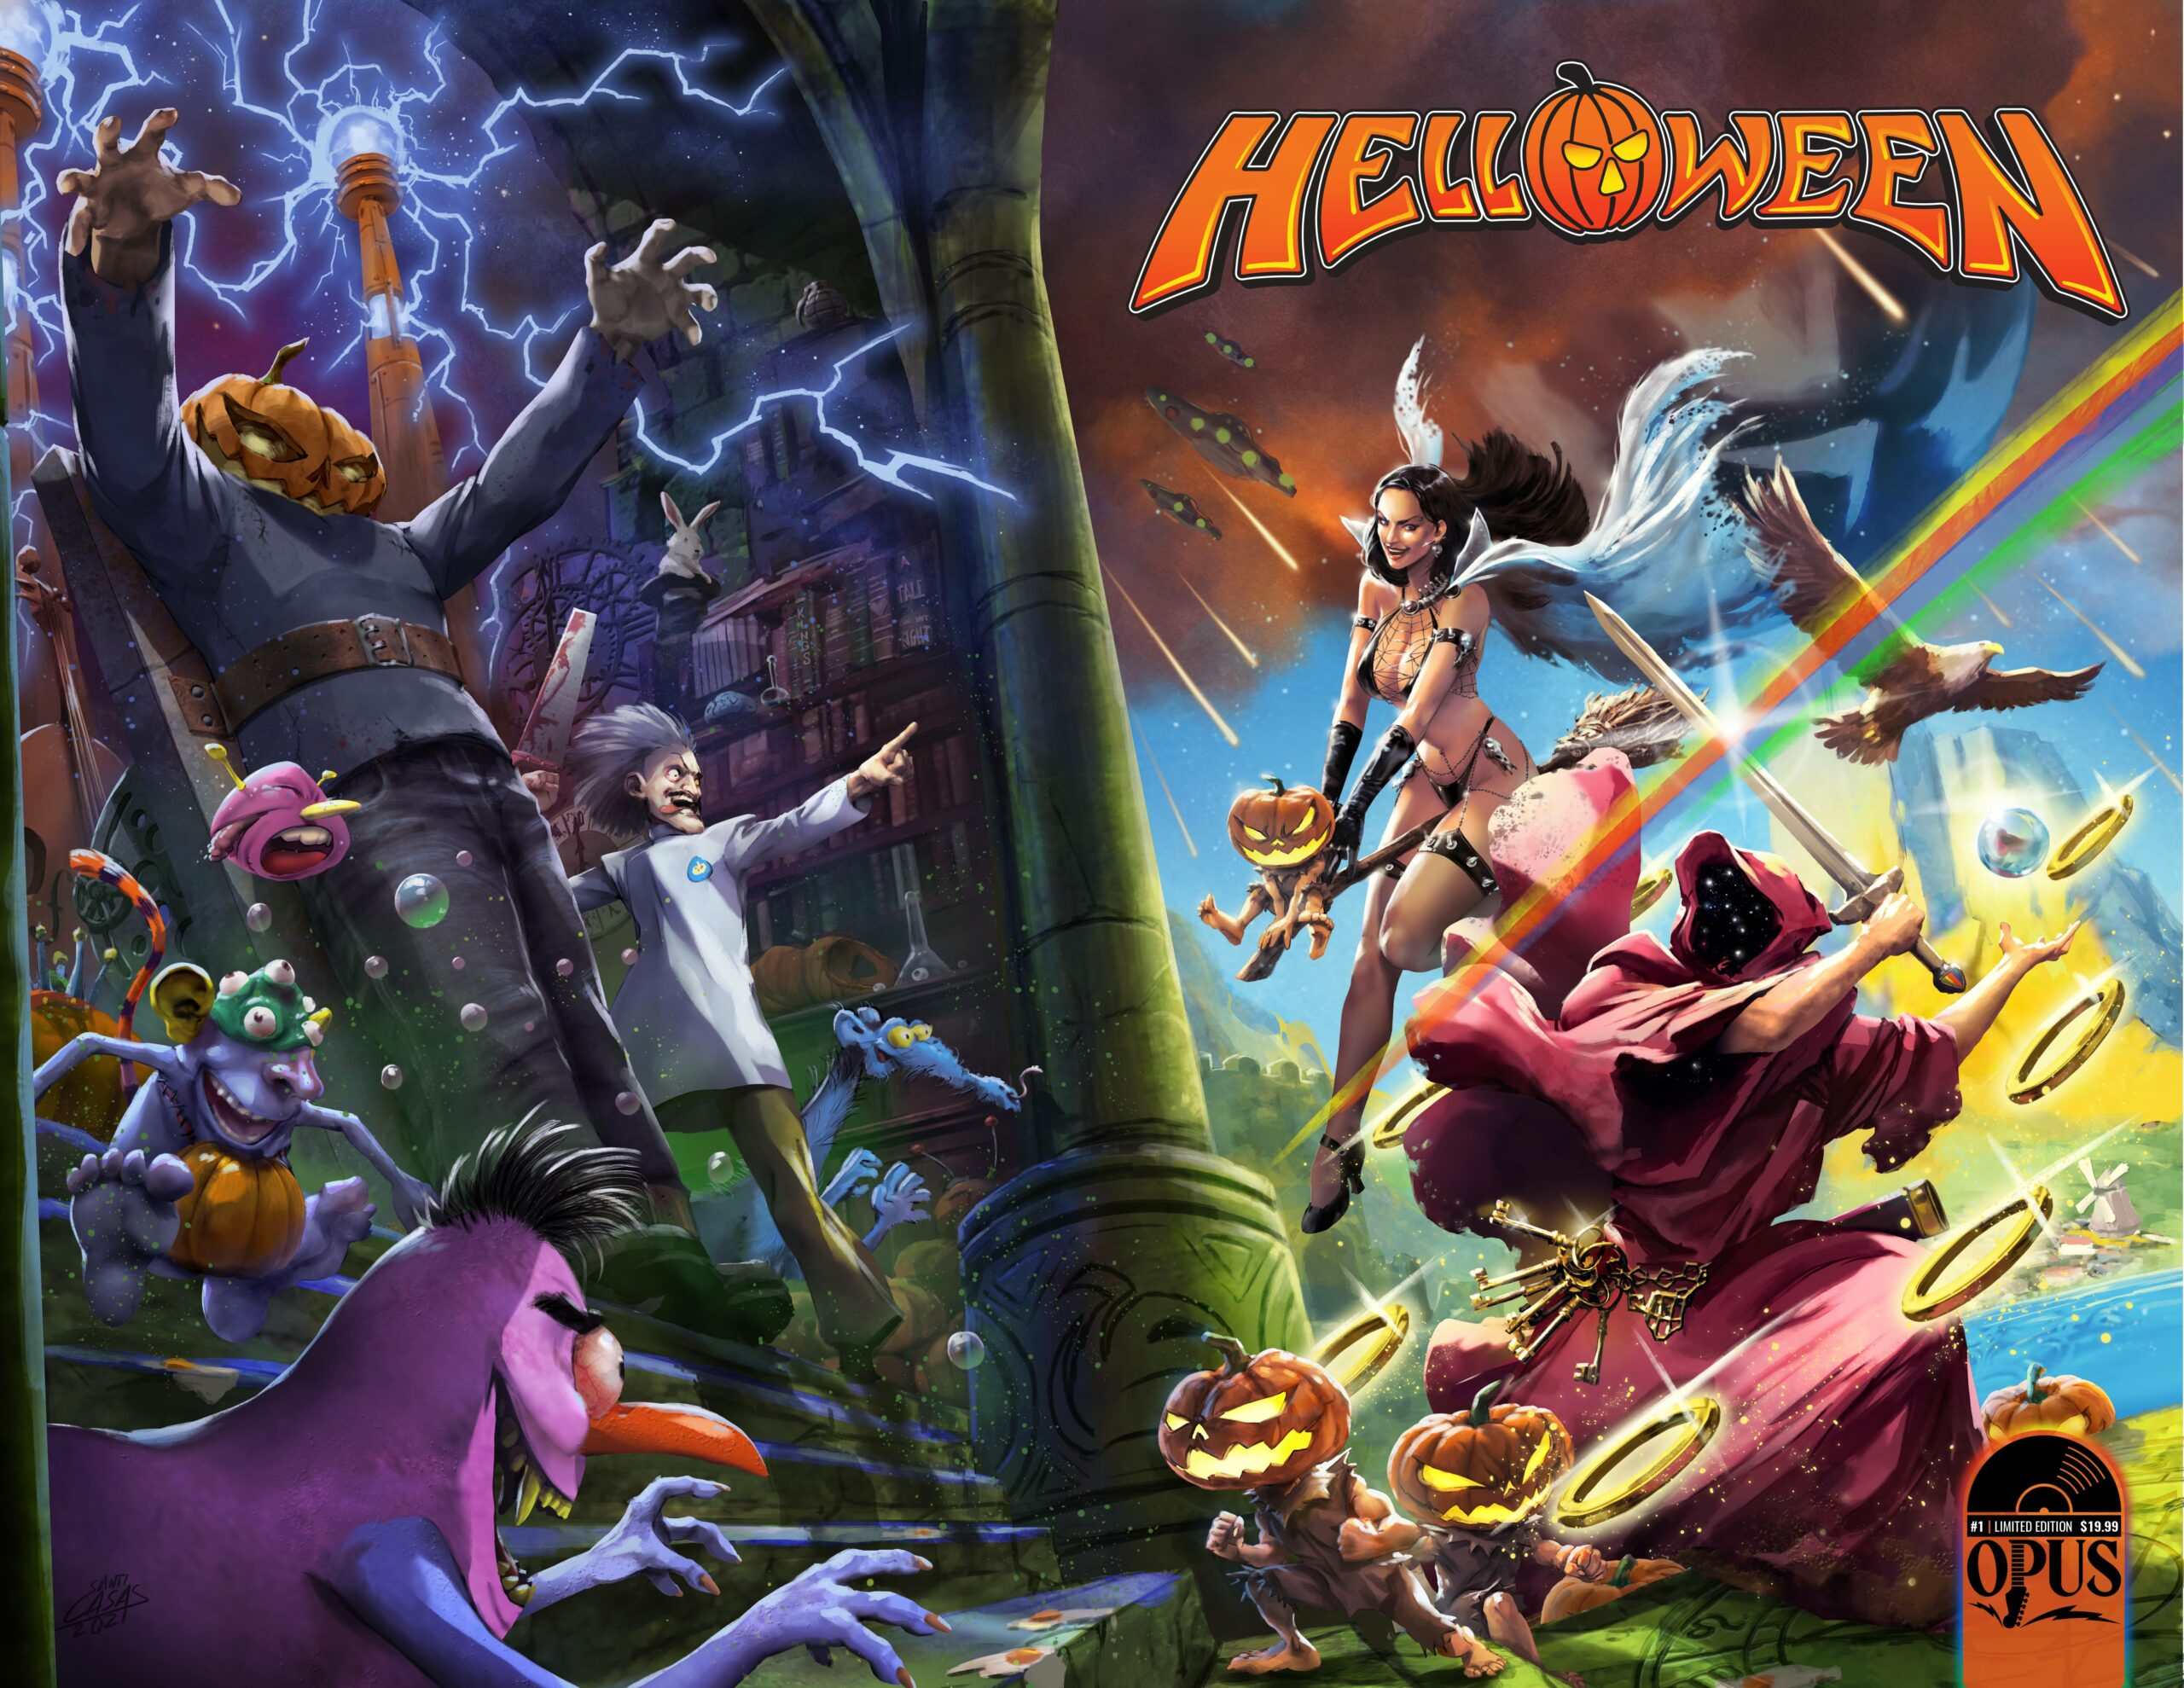 Incendium And Helloween Partner To Make Comics And Action Figures – COMICON